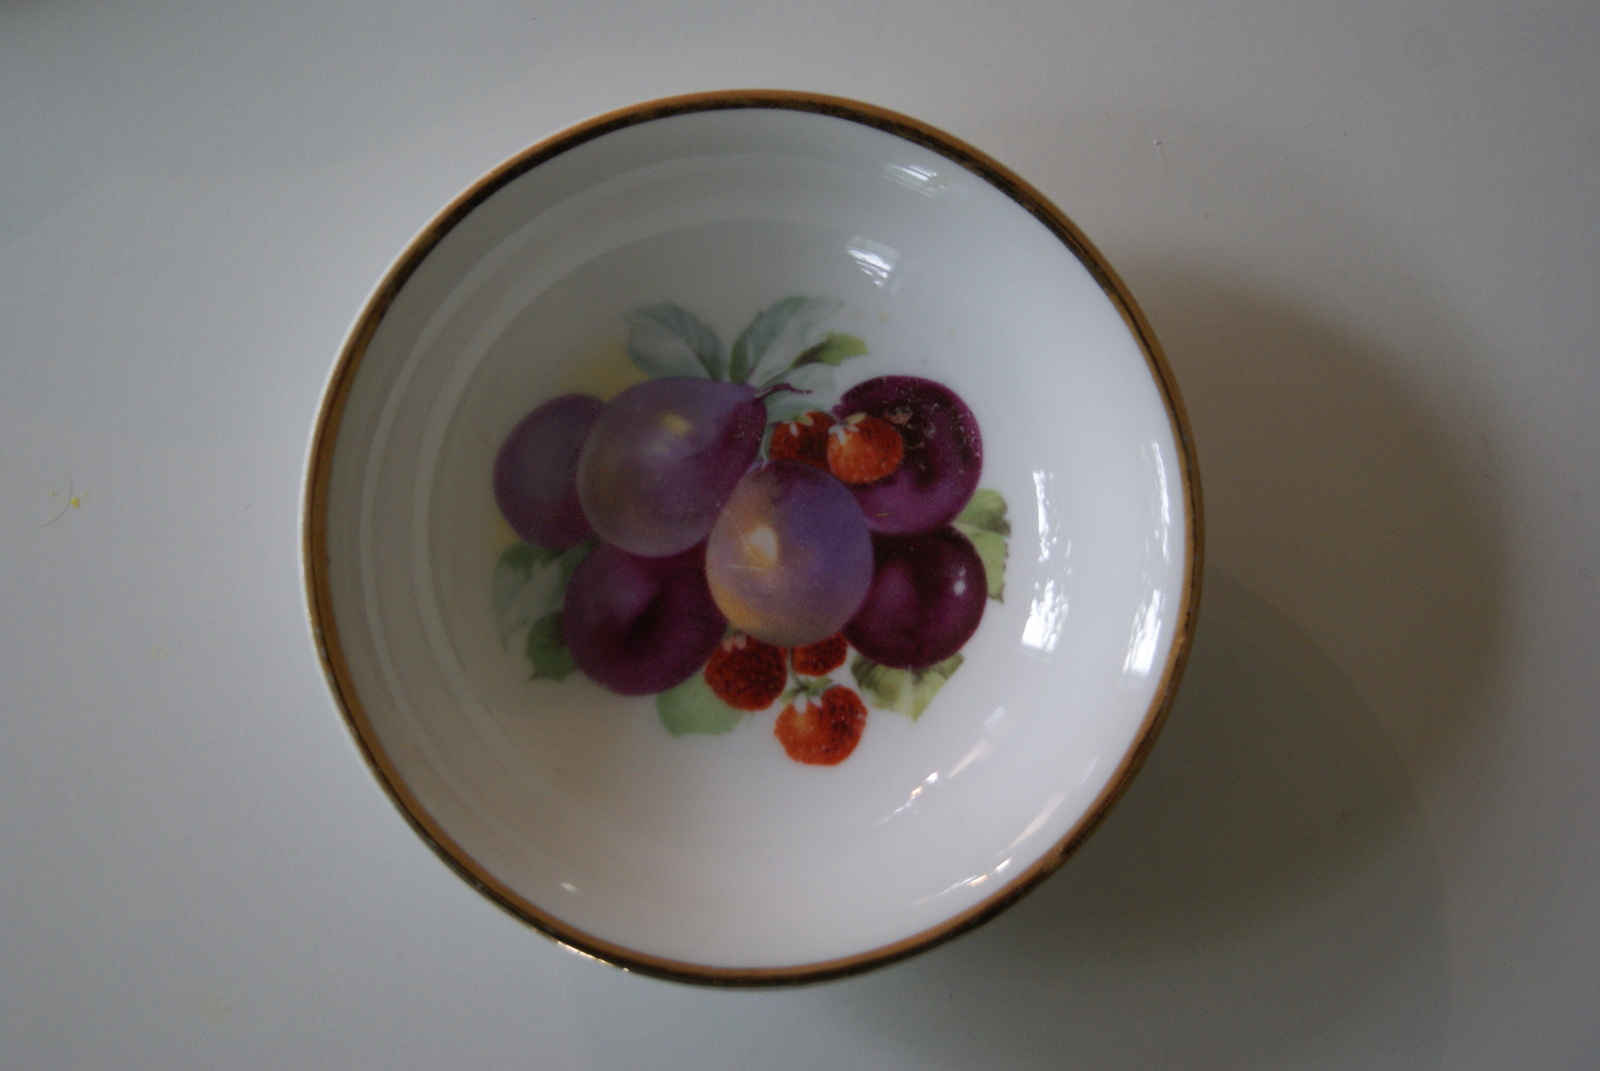 Porsgrund dessert bowl with fruits - plums and strawberries